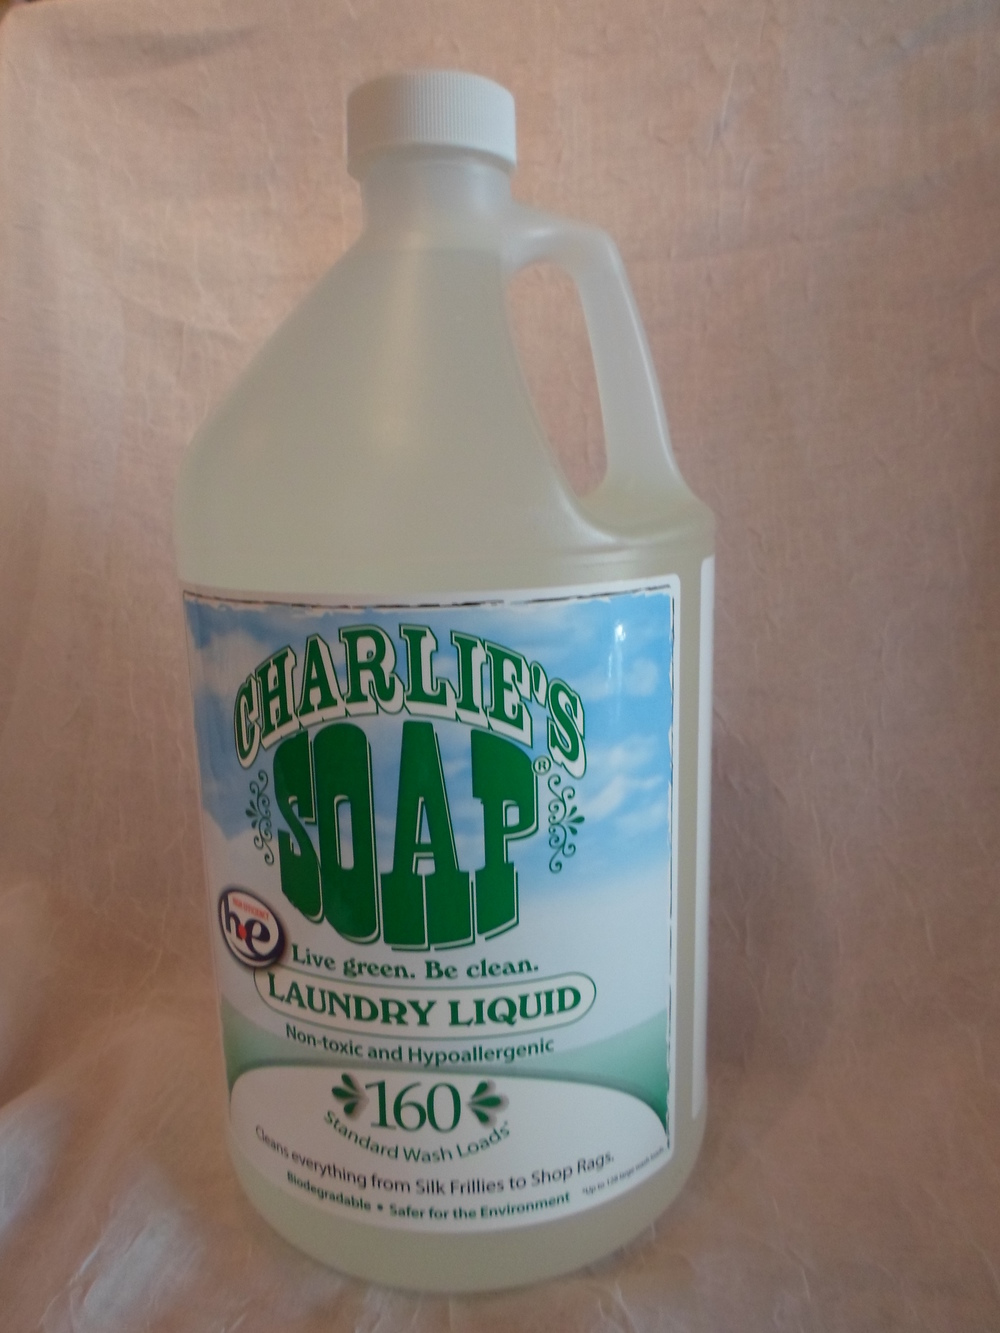 Charlie's Soap Laundry Detergent- gallon $27.40 Wants 1 - PURCHASED